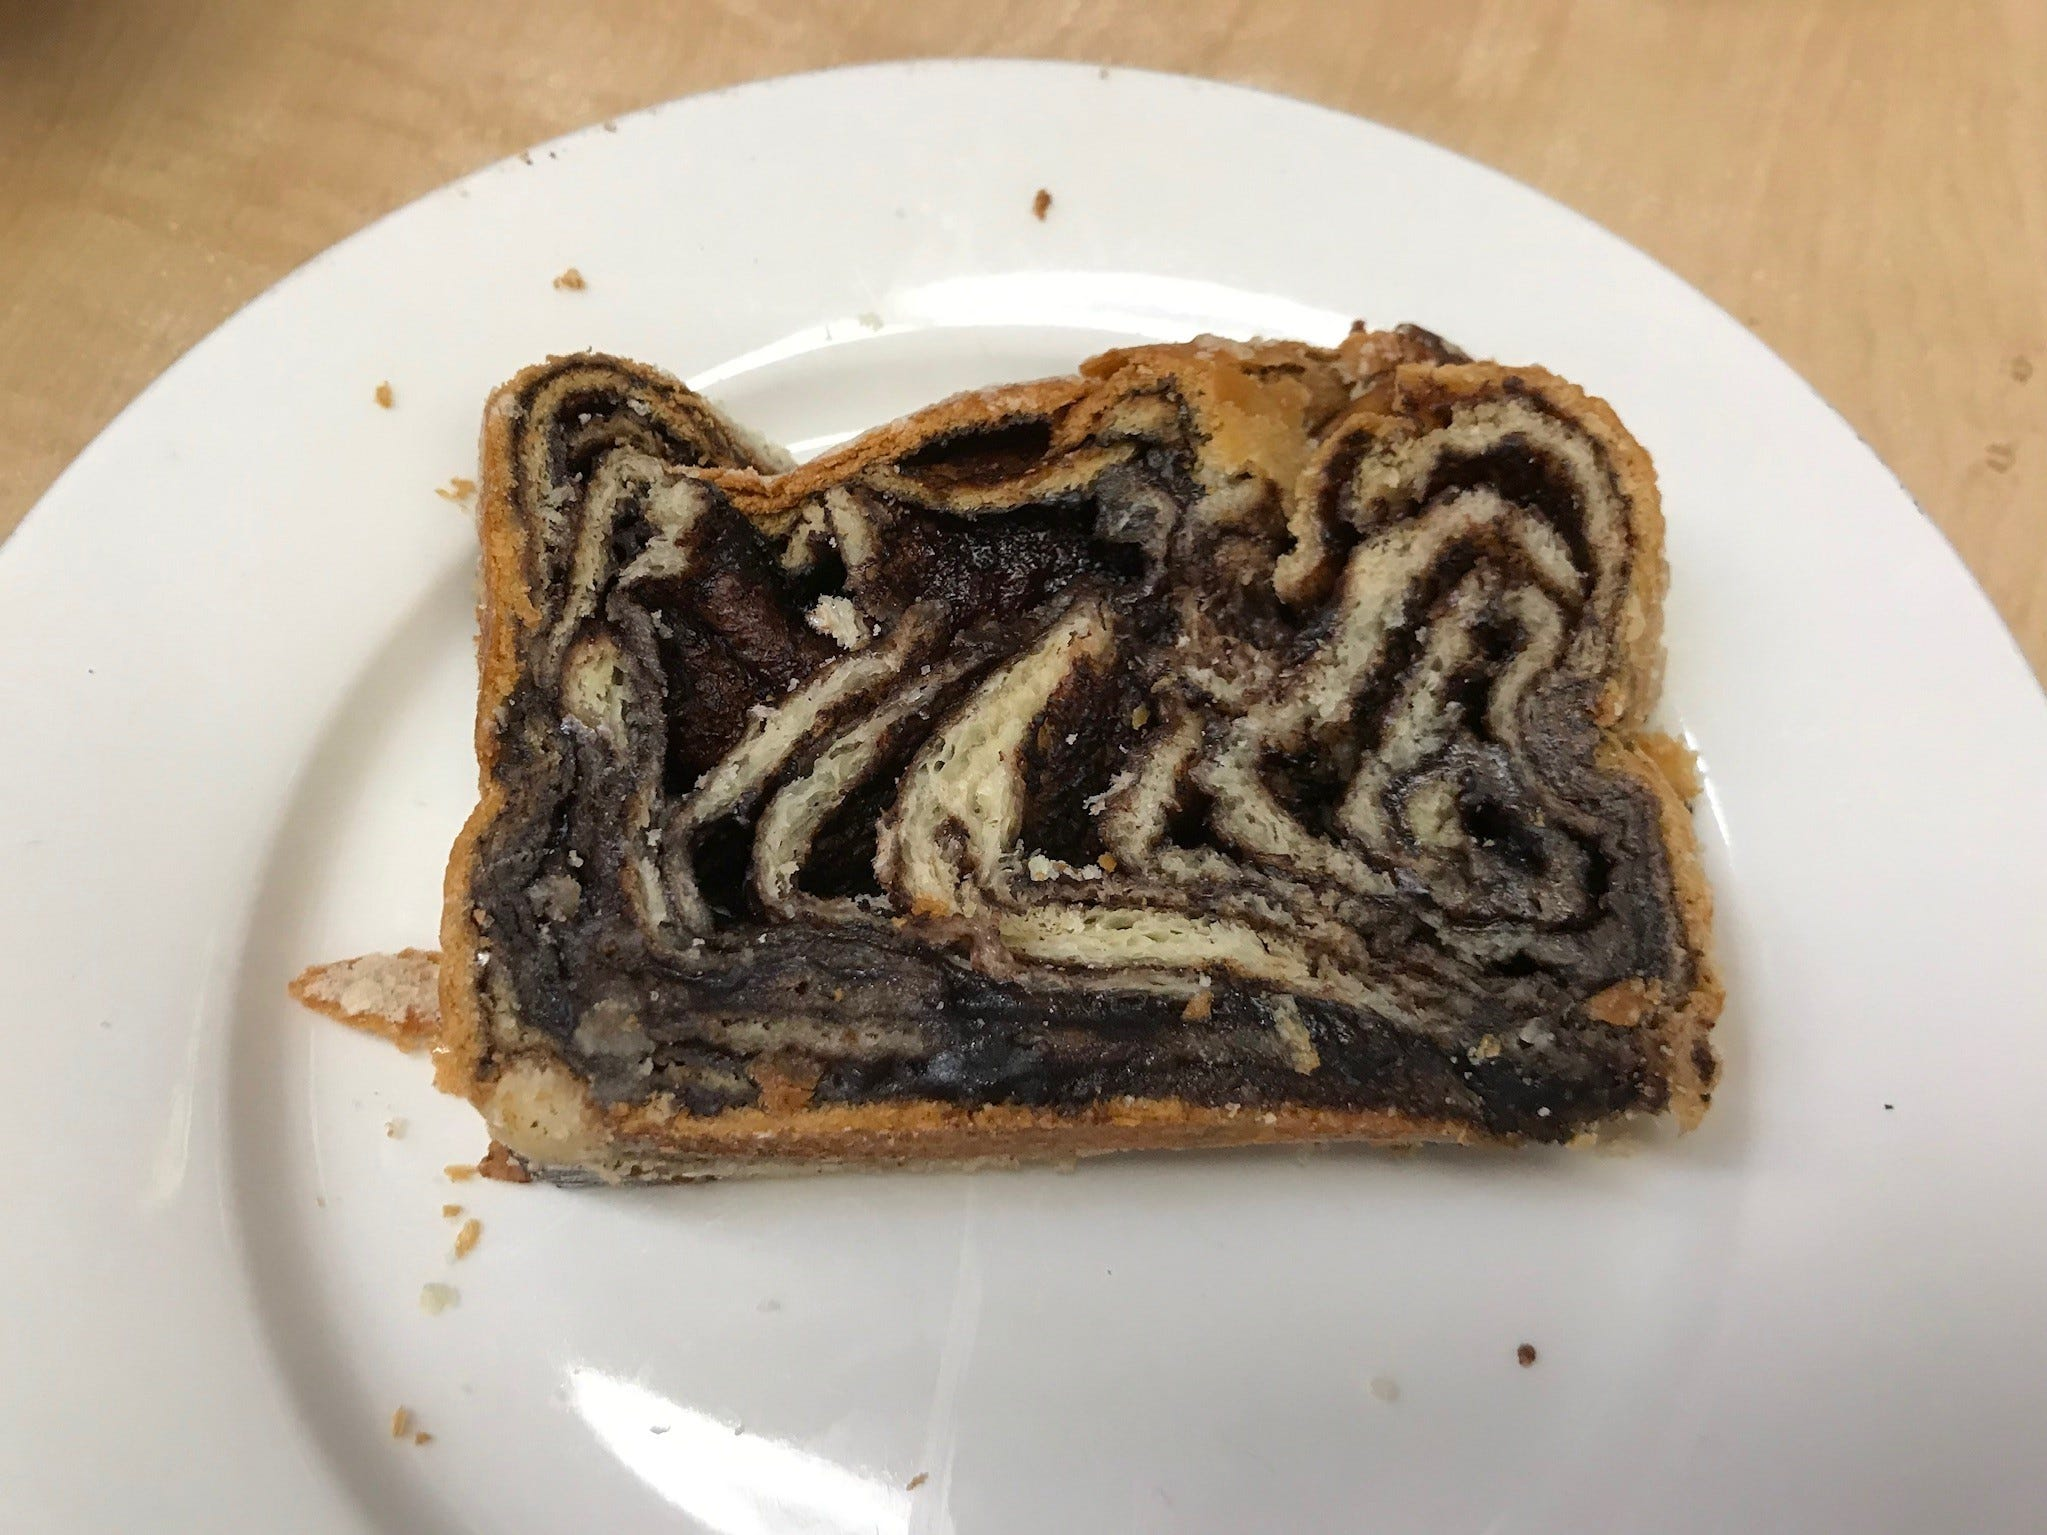 A slice of the famed babka, moist, delicious and packed with chocolate.